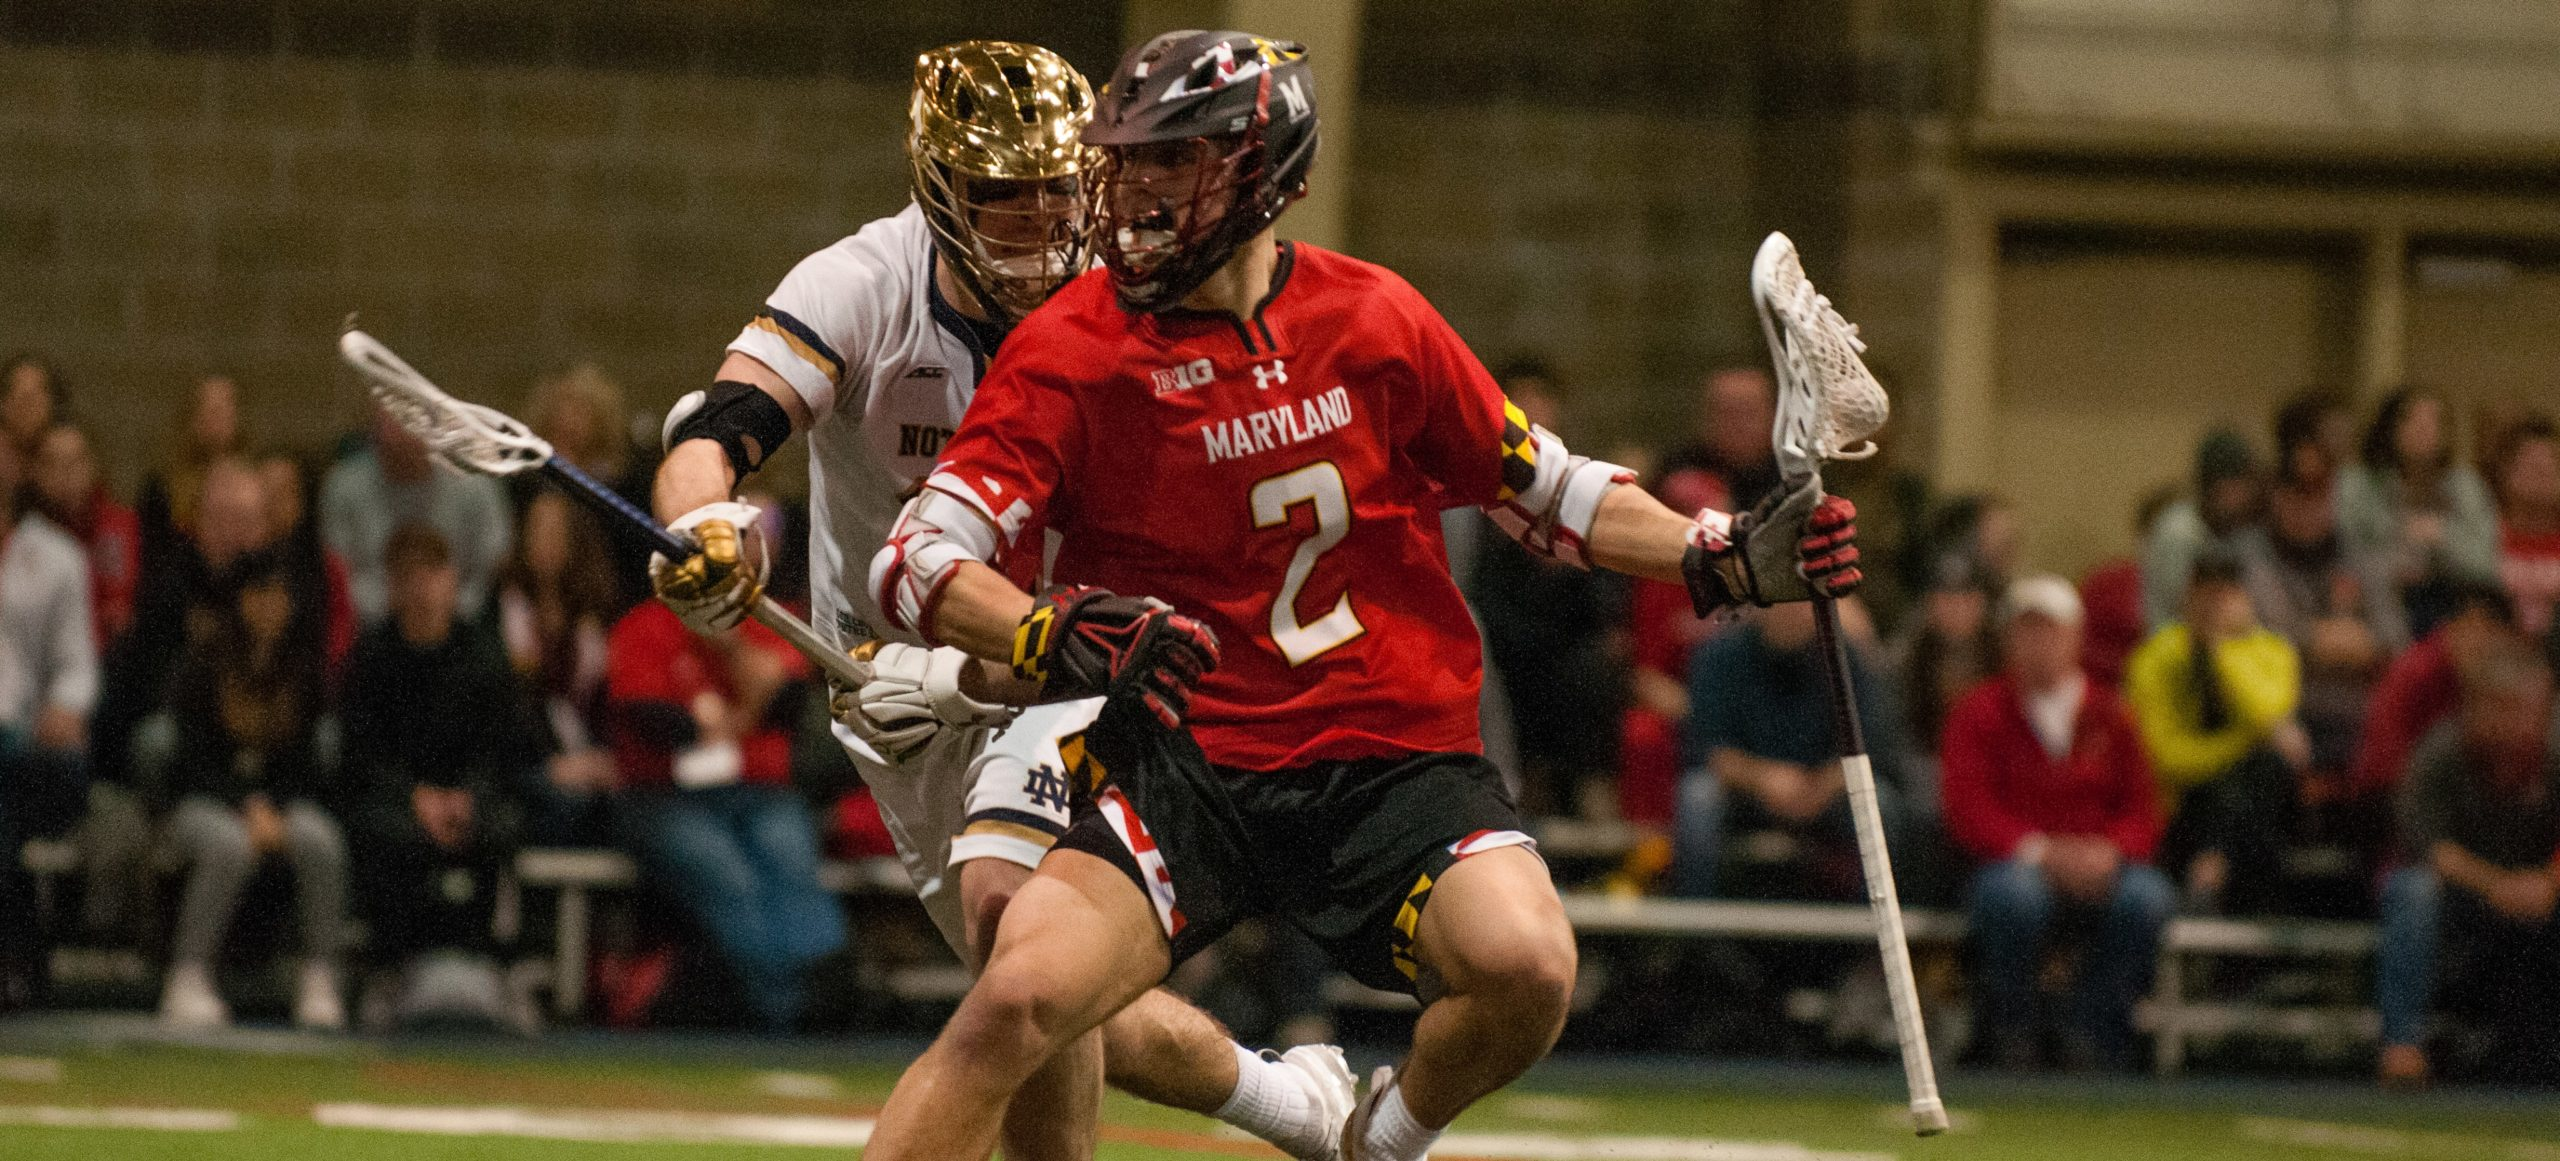 Maryland Lacrosse's Bubba Fairman from Sandy, Utah